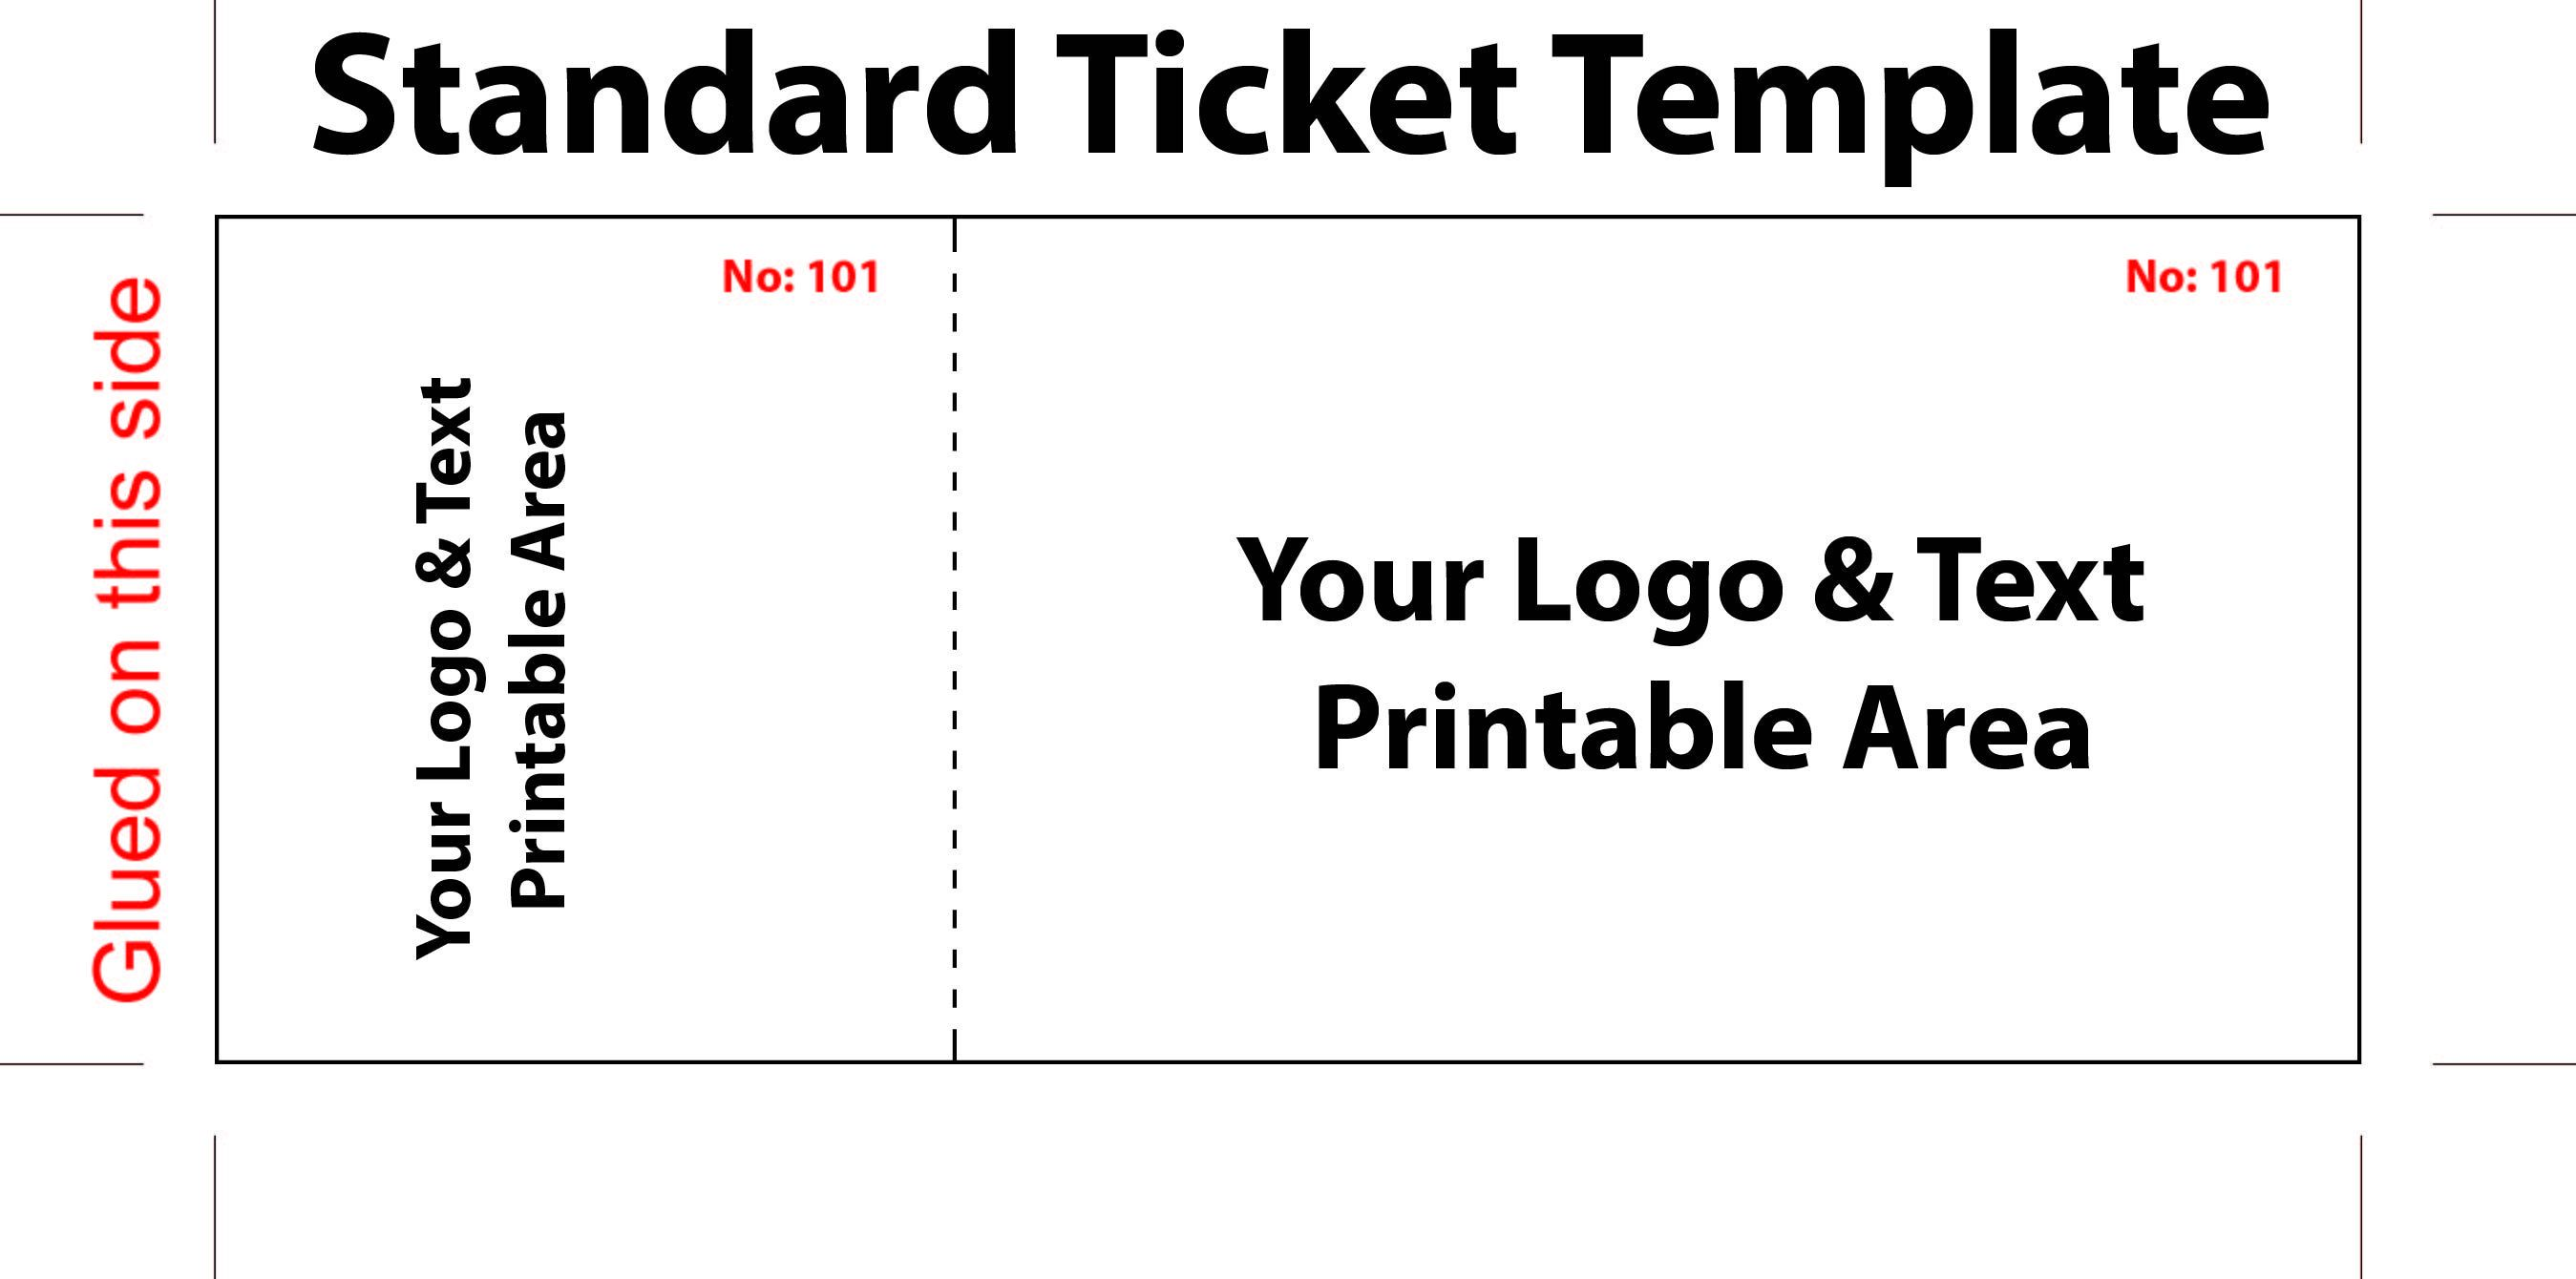 007 Staggering Concert Ticket Template Free Printable Image  GiftFull